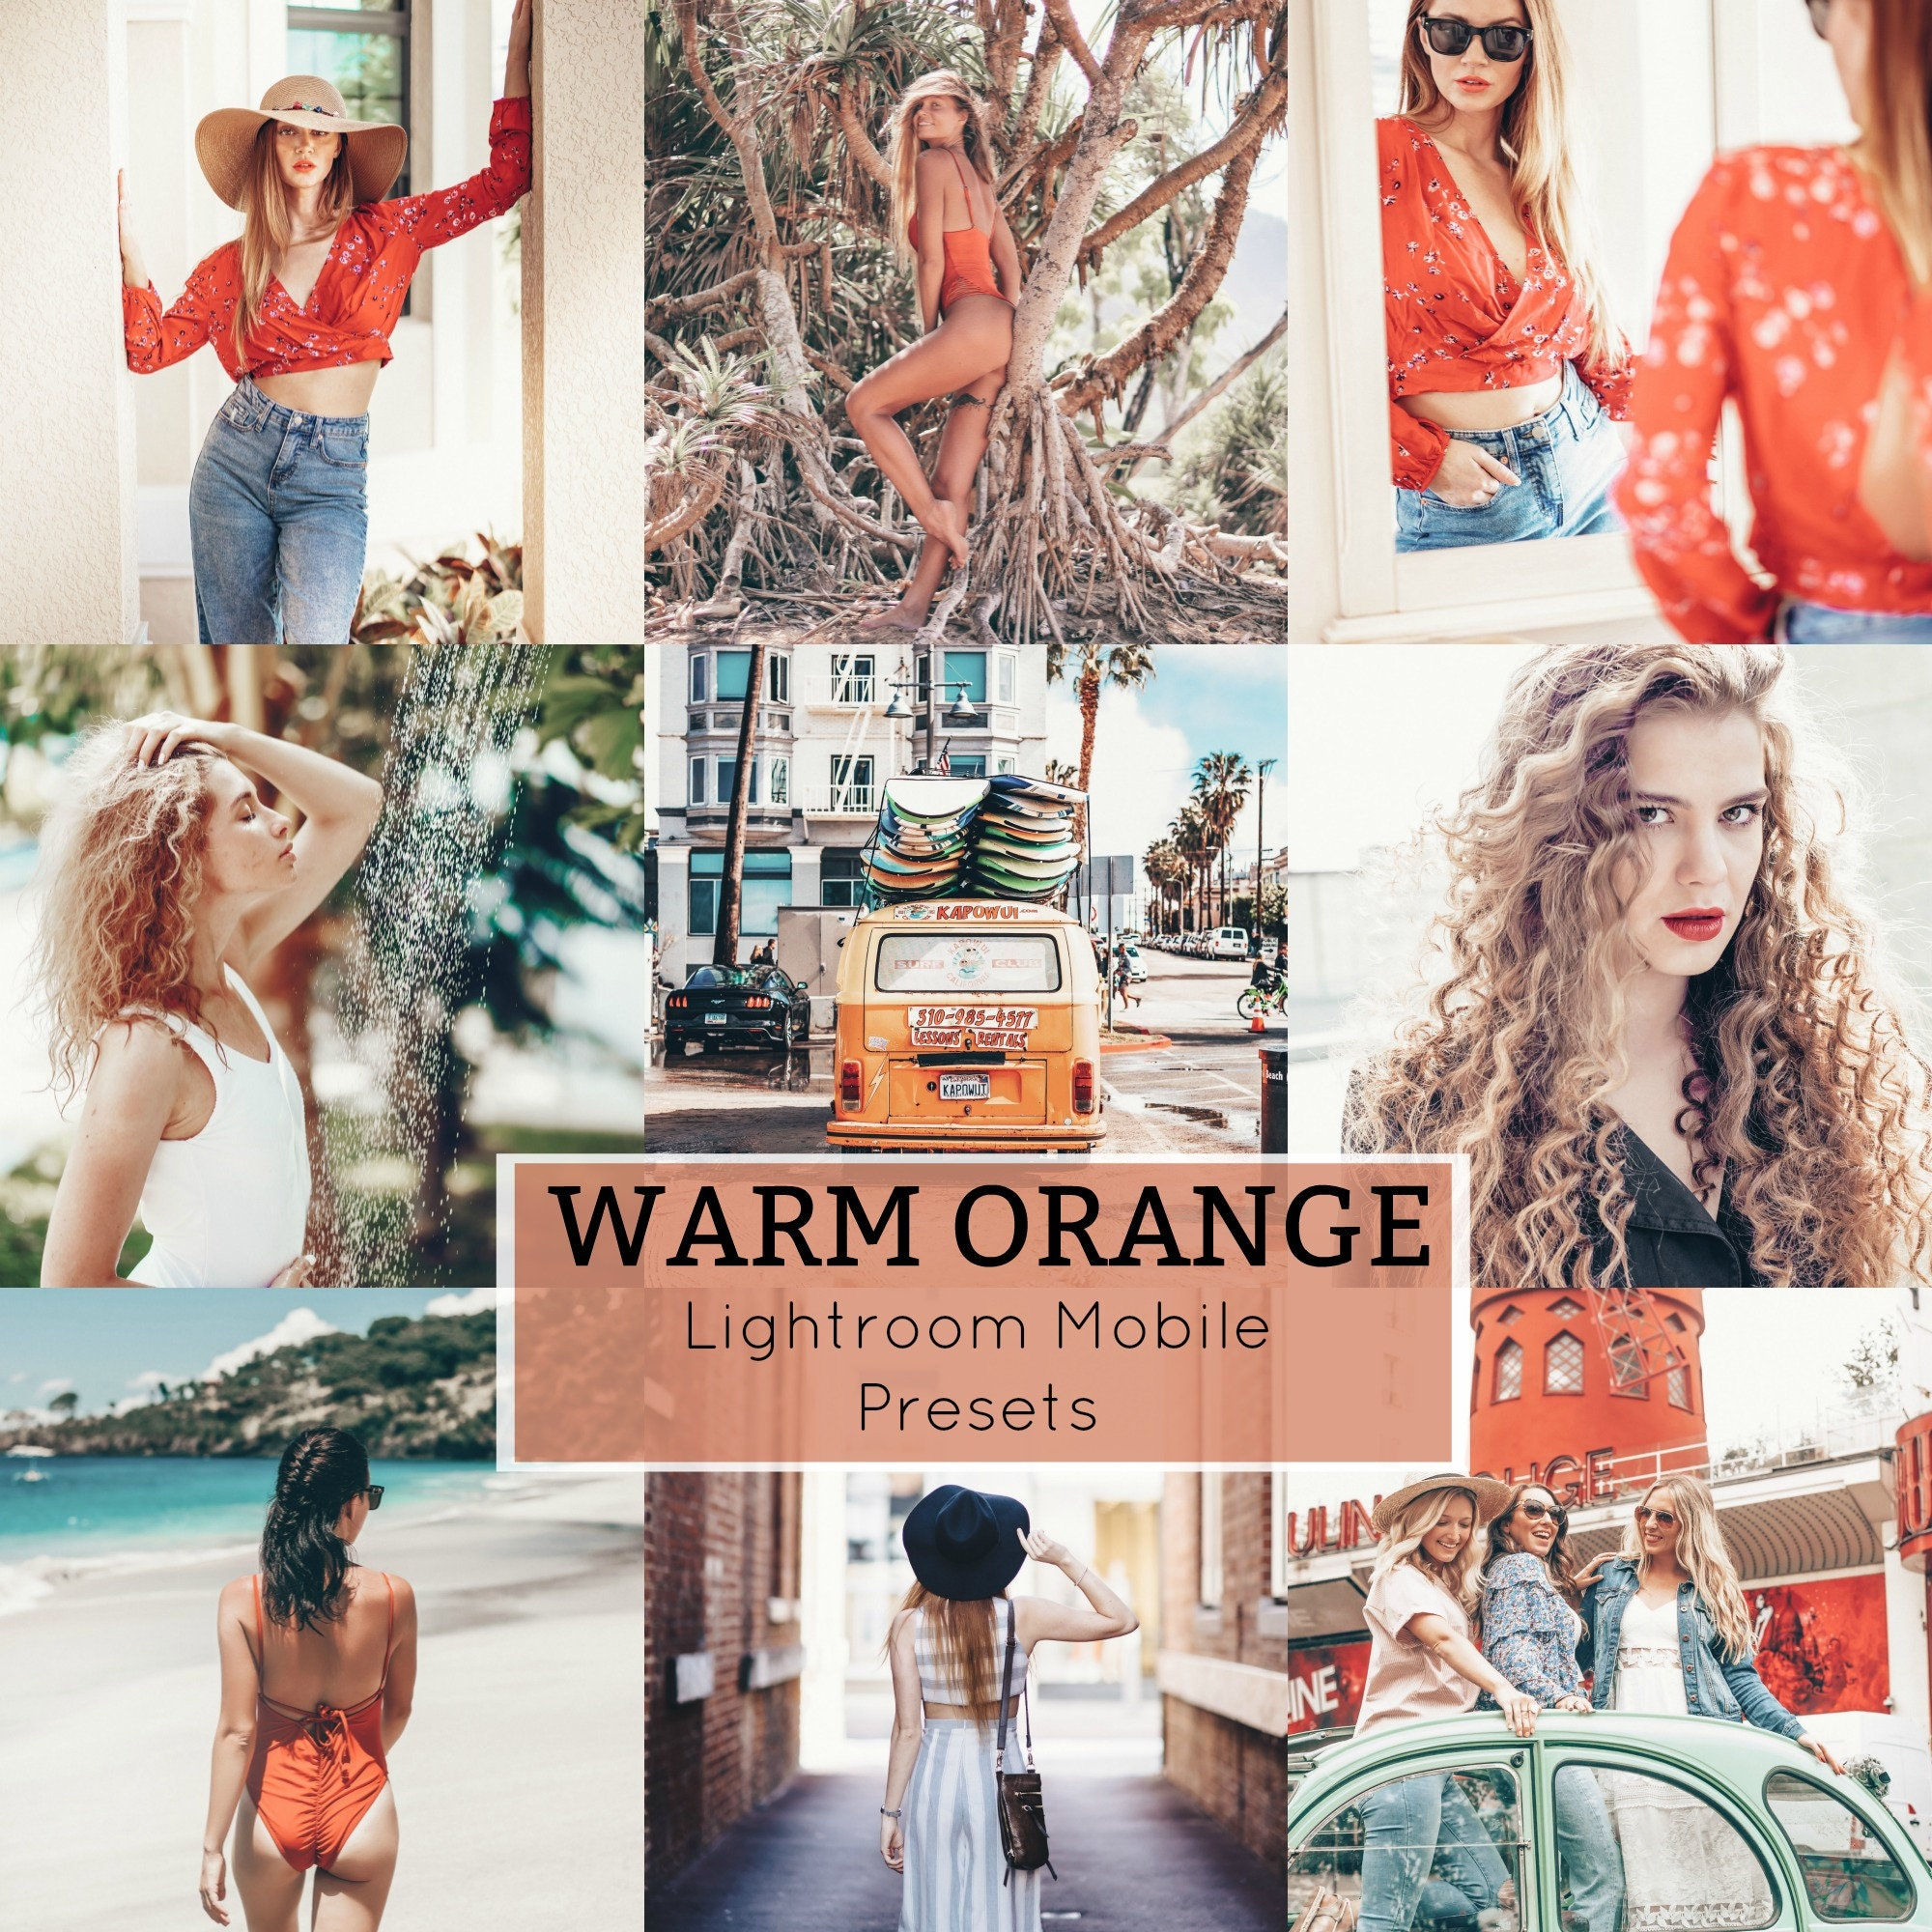 Lightroom Preset for Mobile Phone, Orange Preset, Warm Preset, Warm Orange  Preset Mobile, Blogger Presets, Influencer Presets, Light Airy